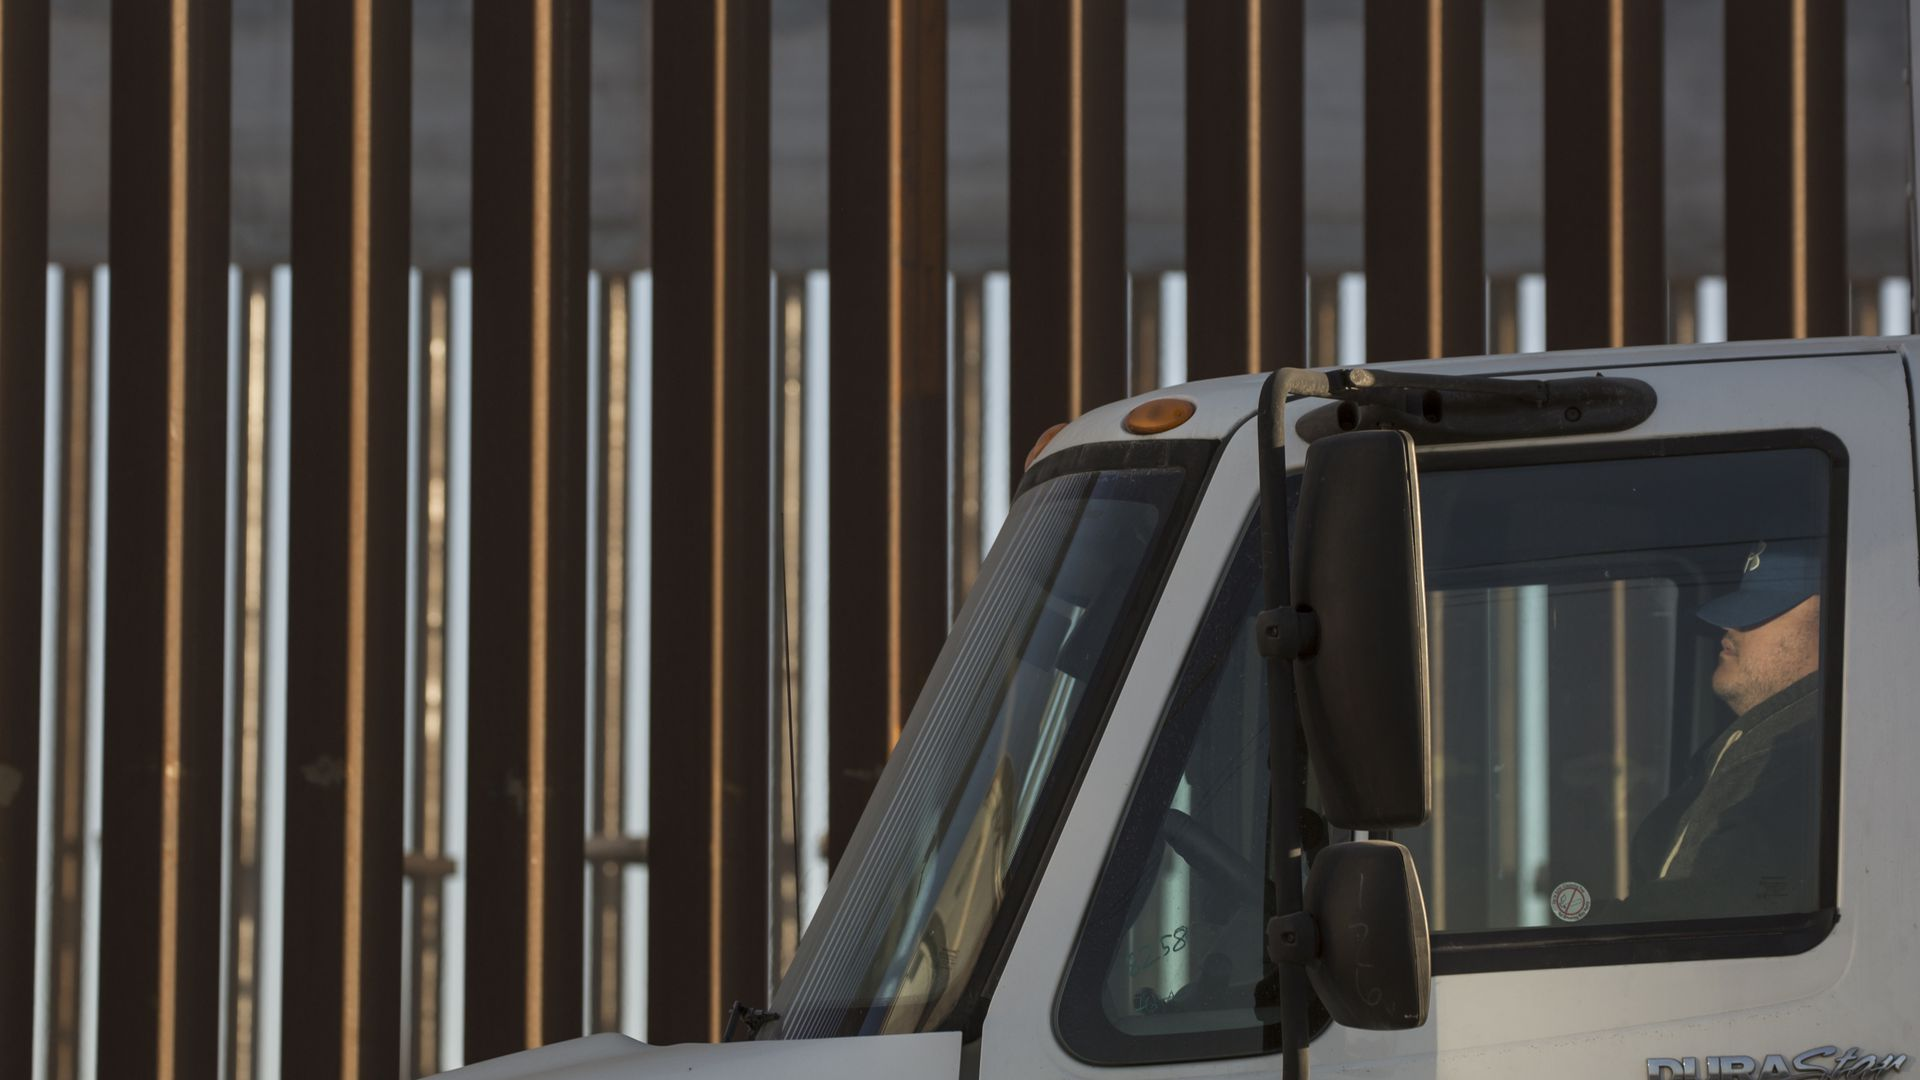 Smugglers have been sawing through Trump's border wall